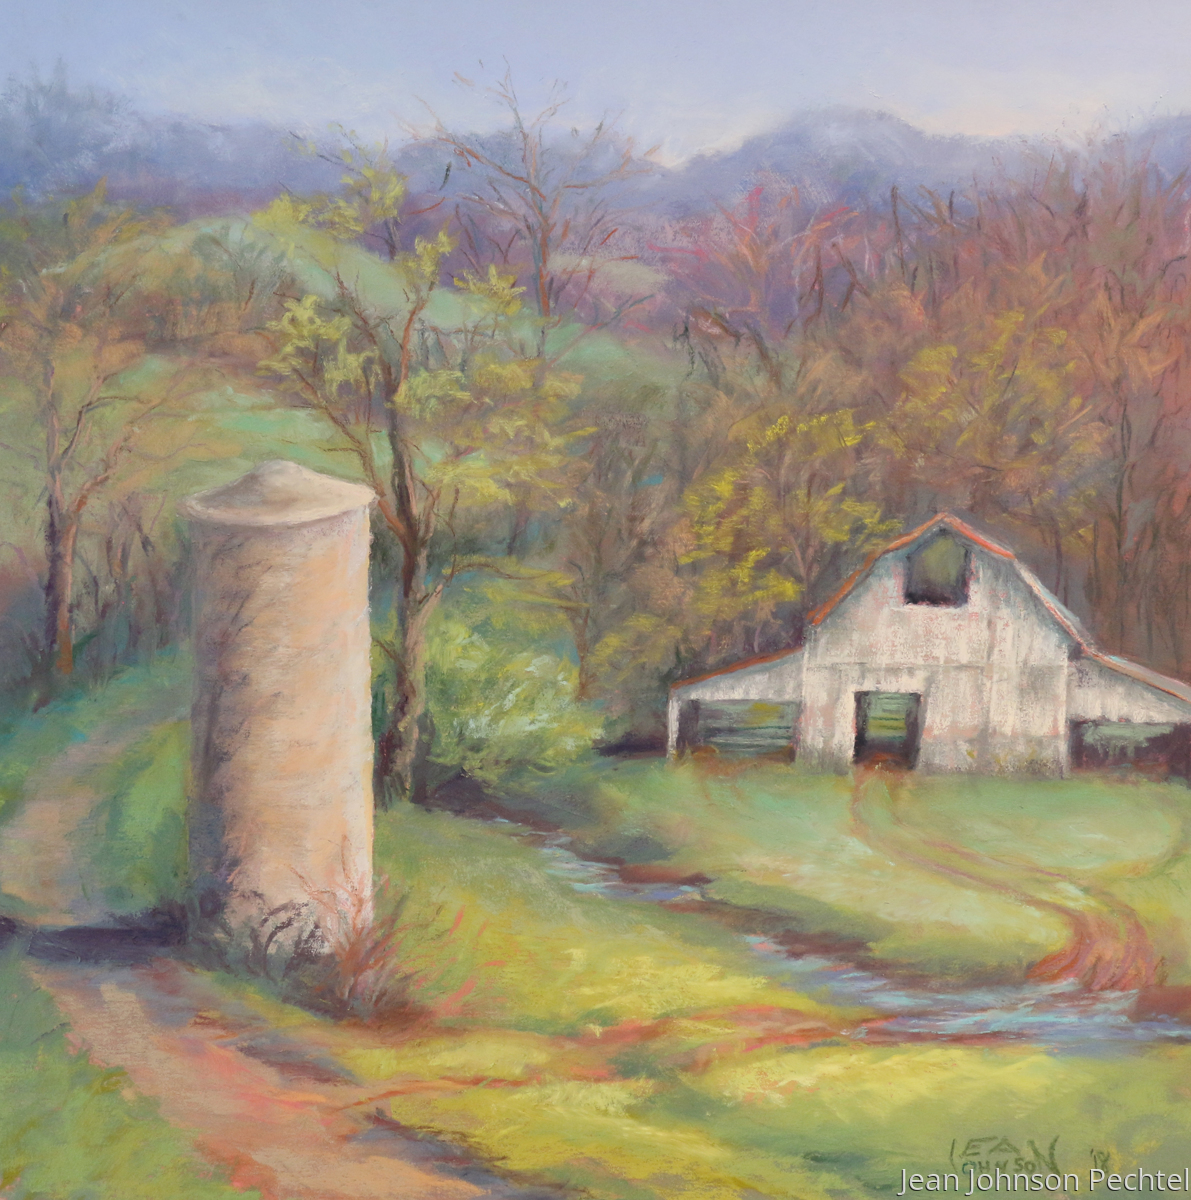 Silo and Barn in the Hills (large view)